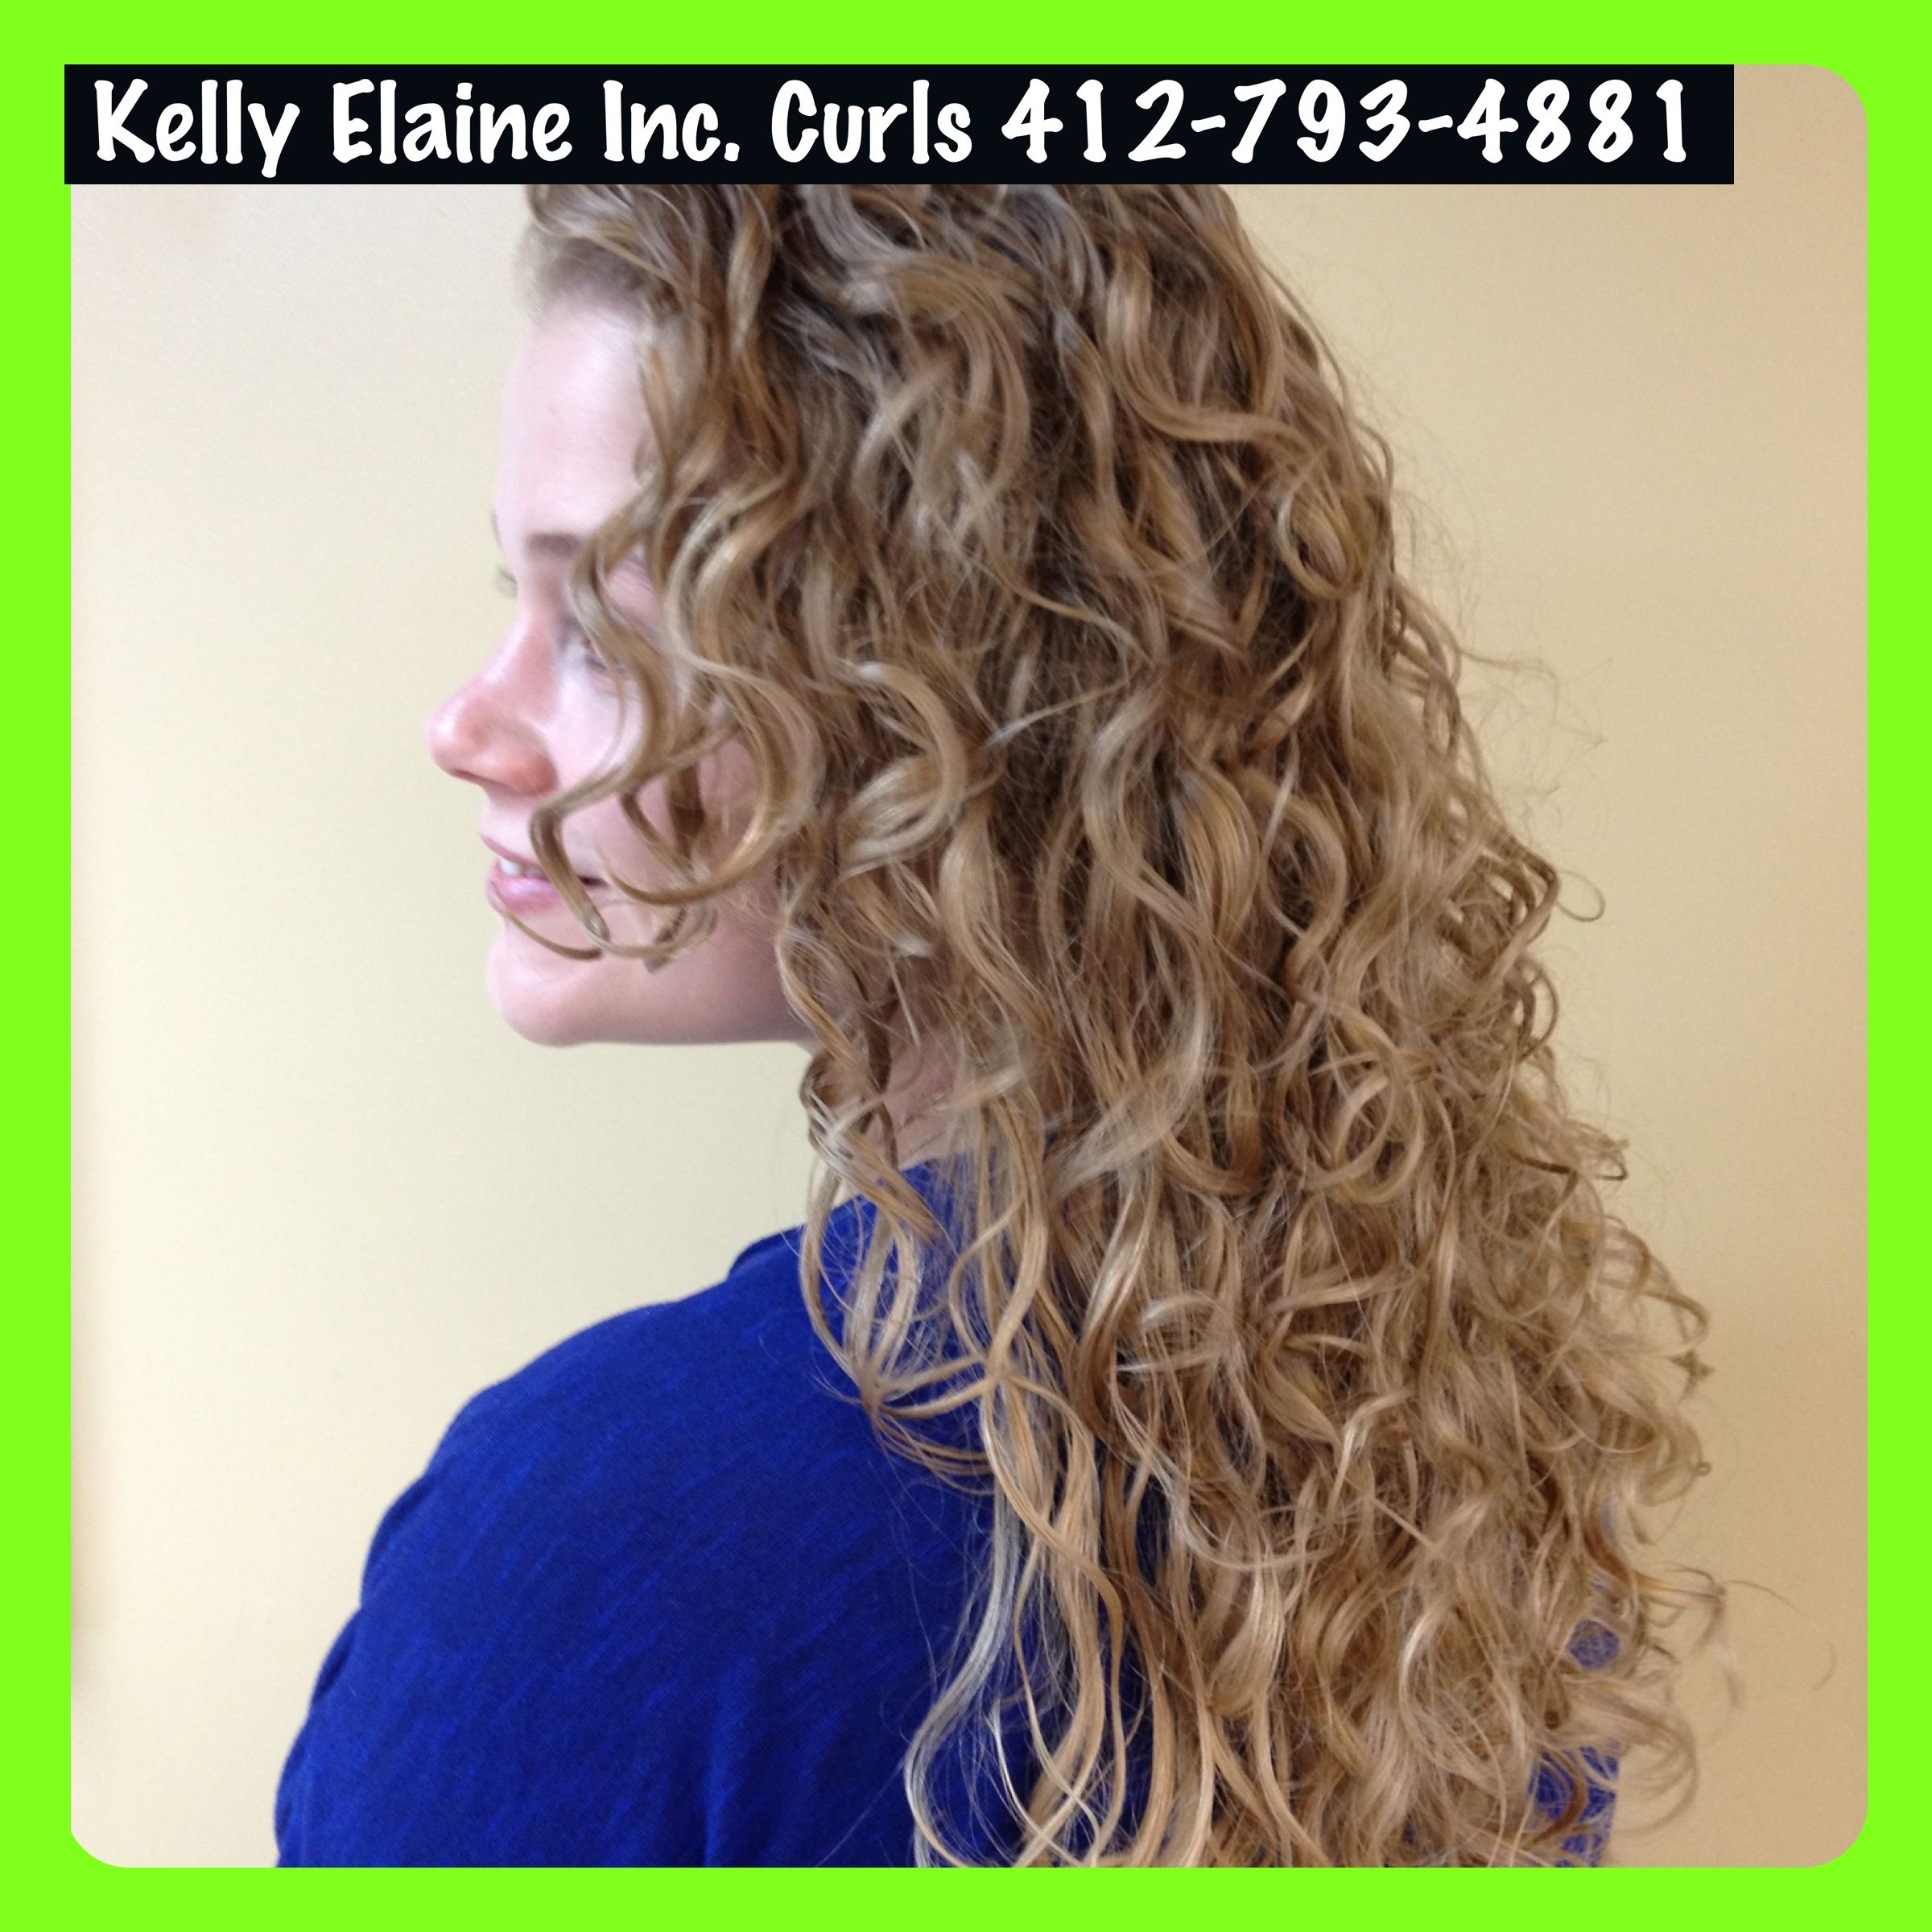 e learn how to make your curls look their best with DevaCurl and